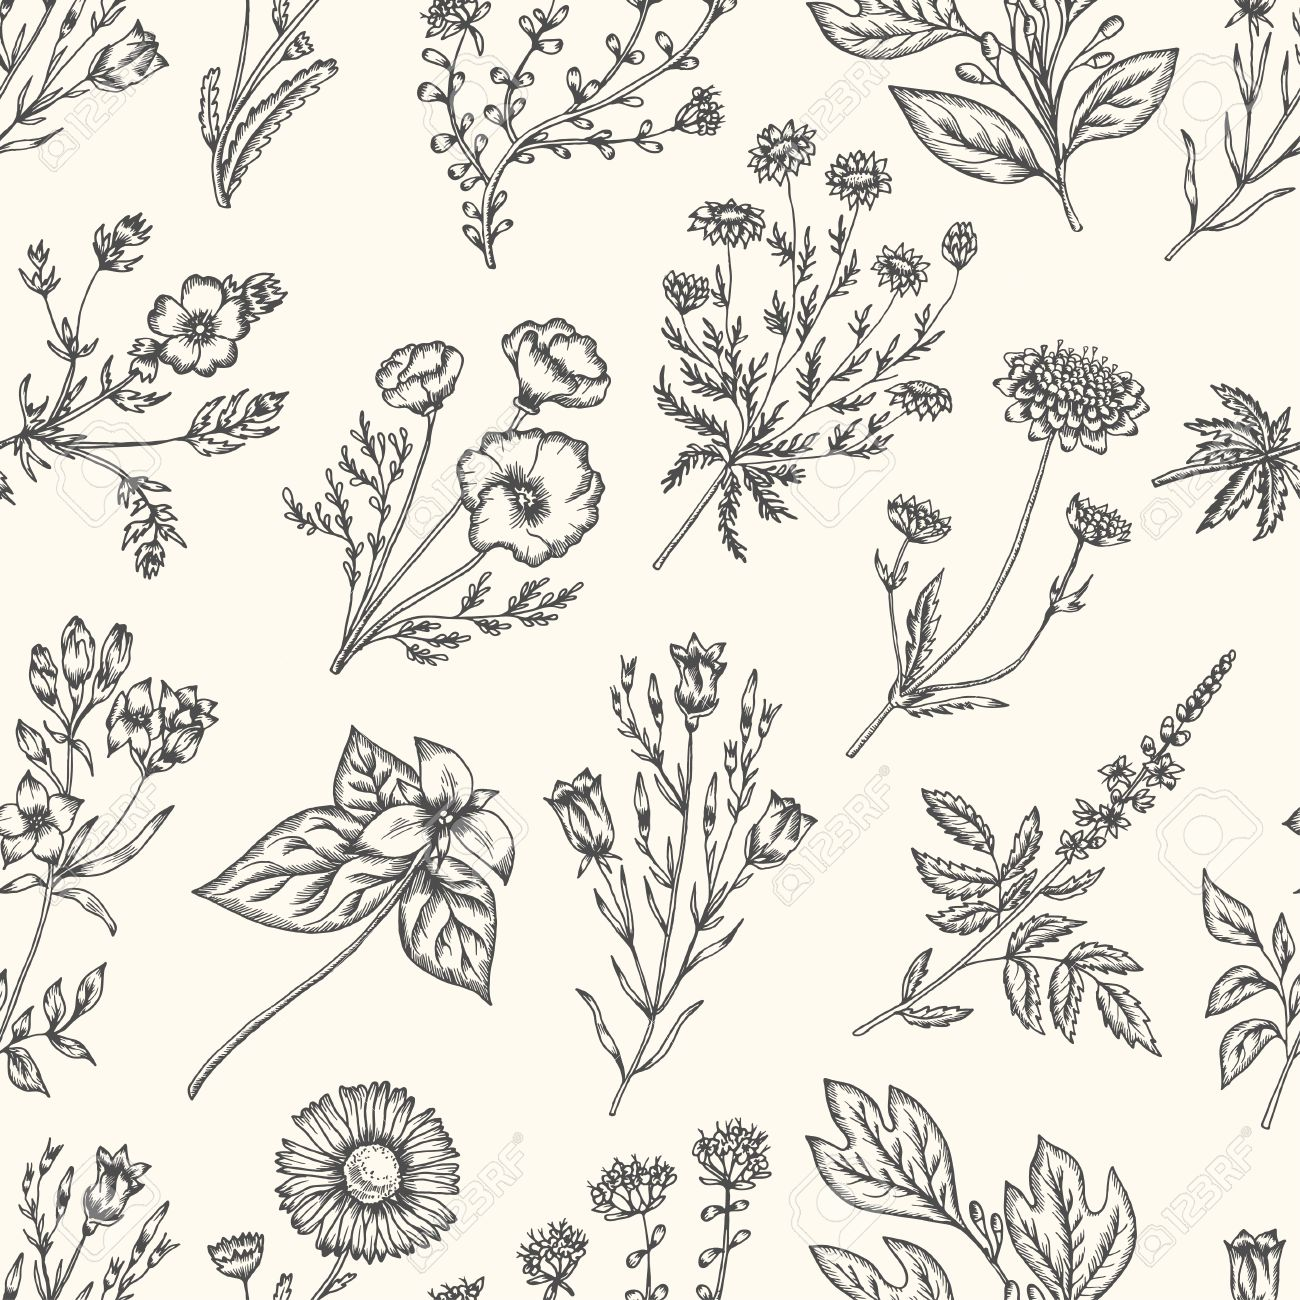 1300x1300 Wild Flowers And Herbs. Seamless Floral Pattern. Botanical Drawing